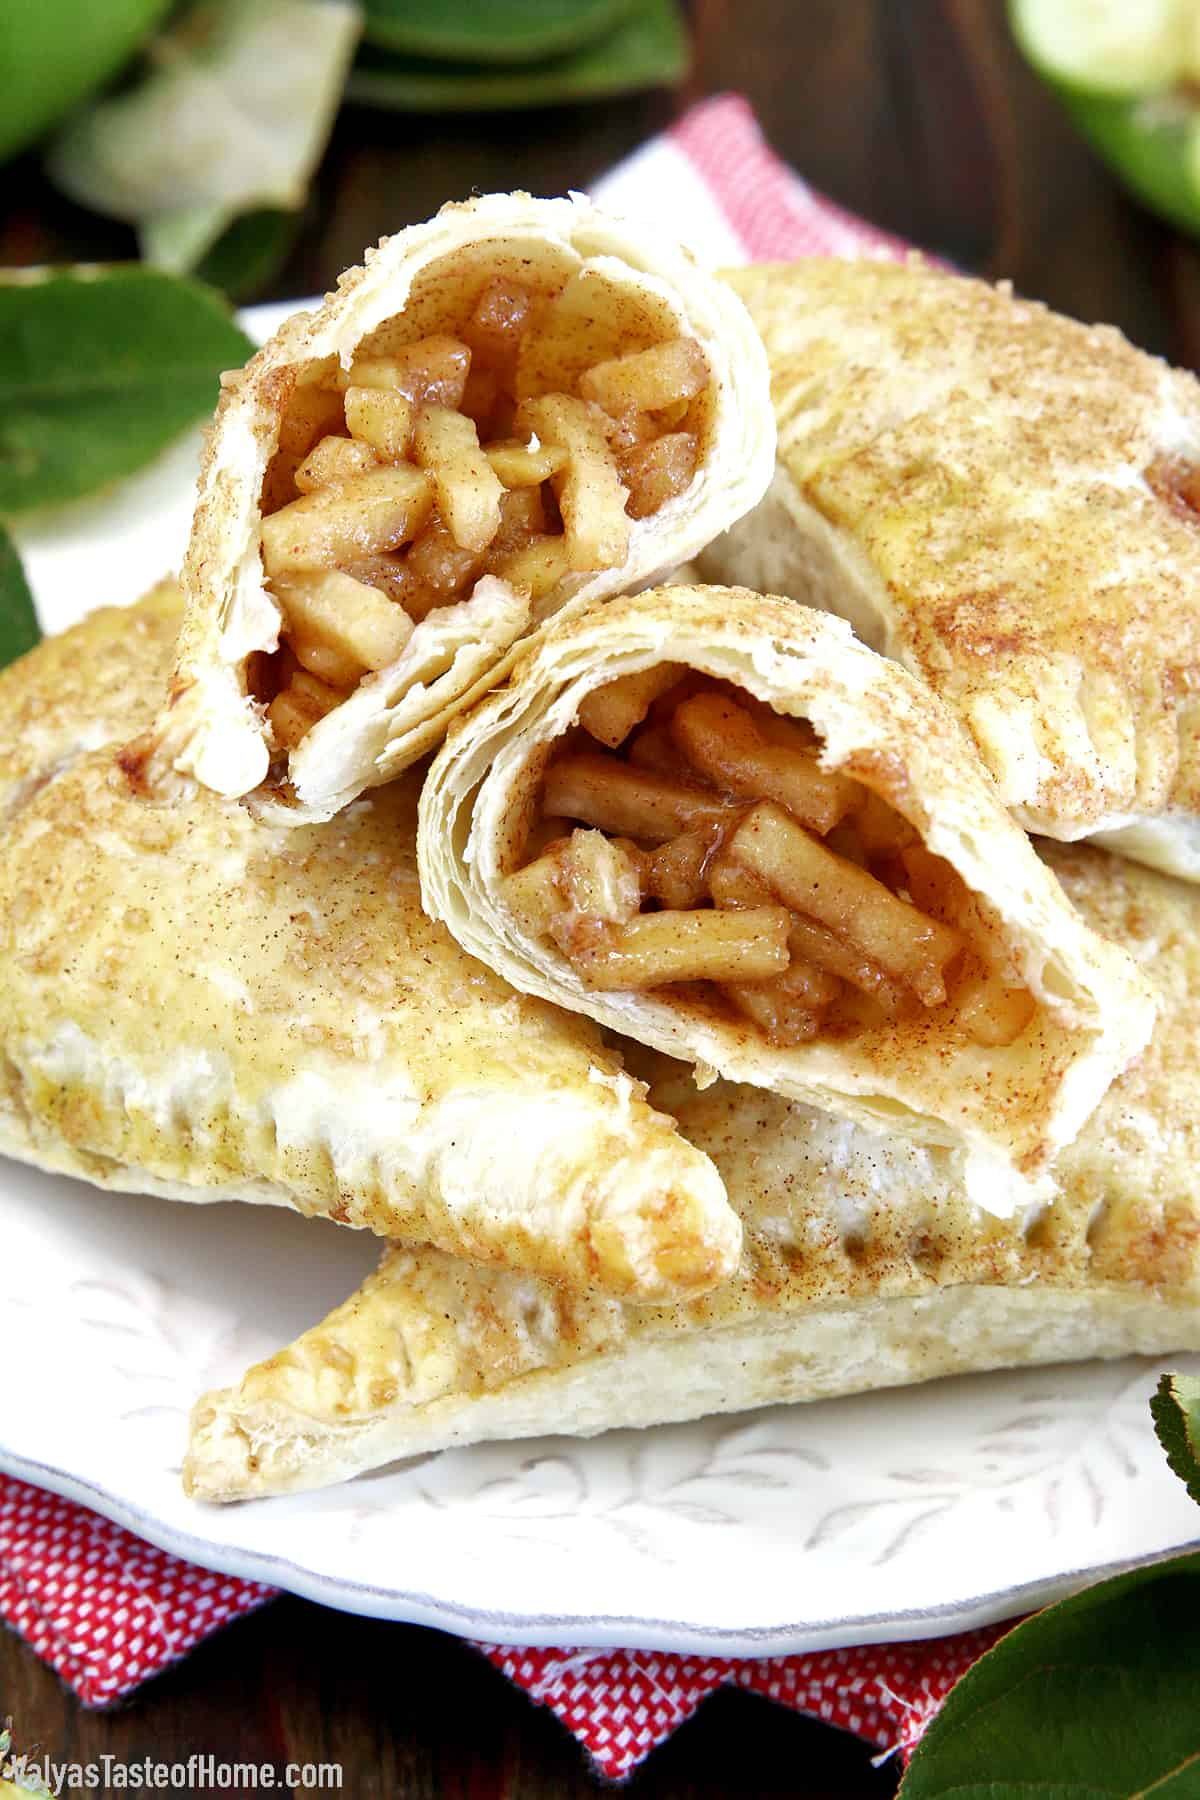 Fall just got sweeter! These Easy Puff Pastry Cinnamon Apple Turnovers are absolutely irresistible and as easy as can be. With the delicious cinnamon-apple pie flavors and quick mess-free grab-and-go convenience, what's not to like?